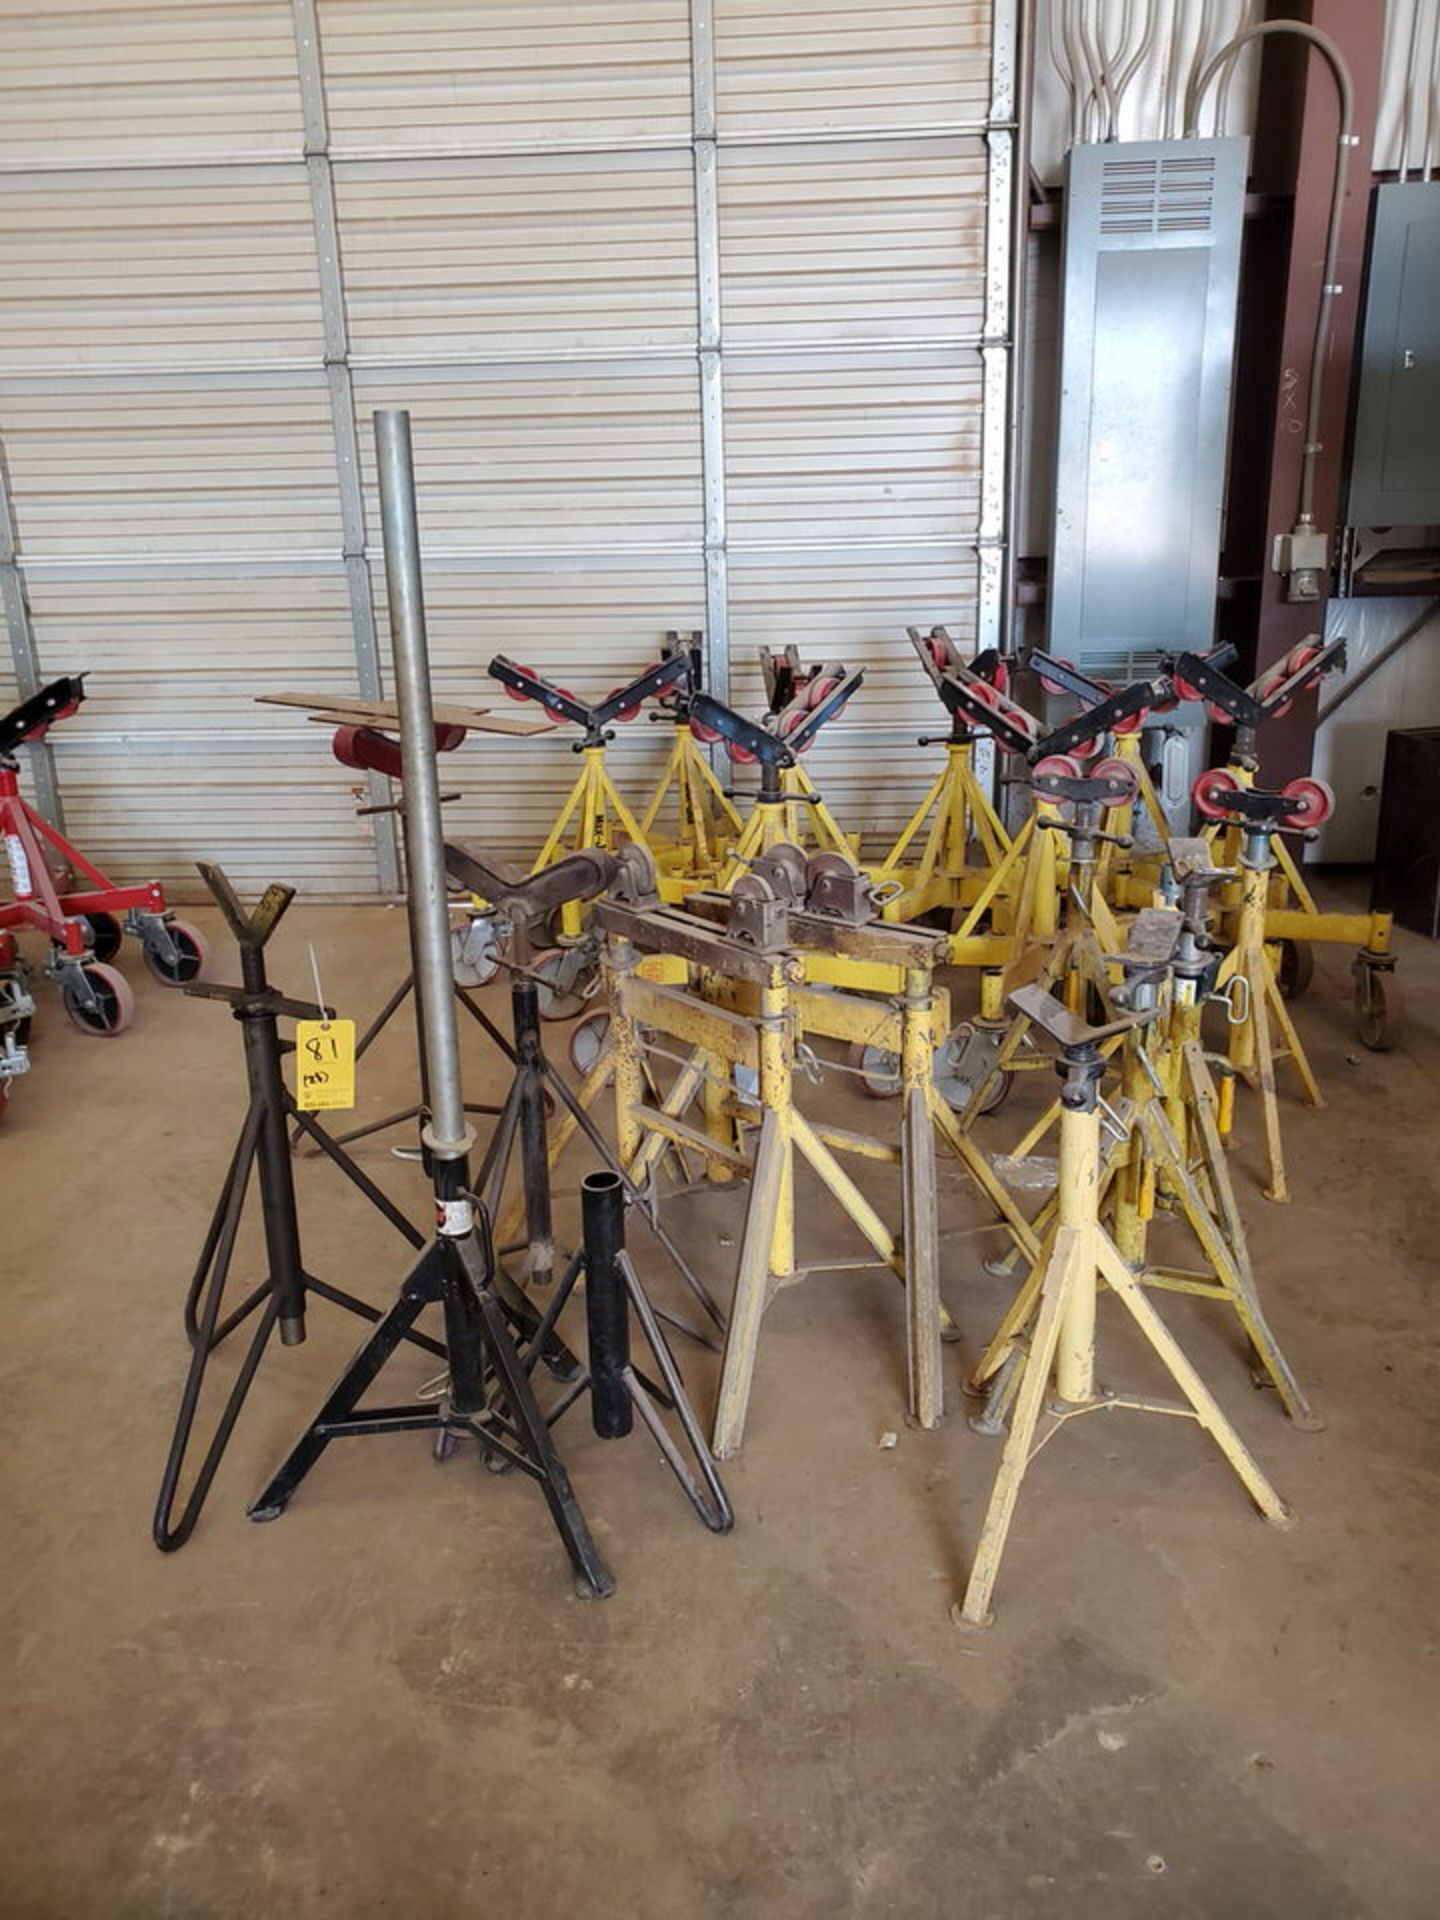 Max & Other (21) Pipe Stands & Rollers 1K-5K Cap.